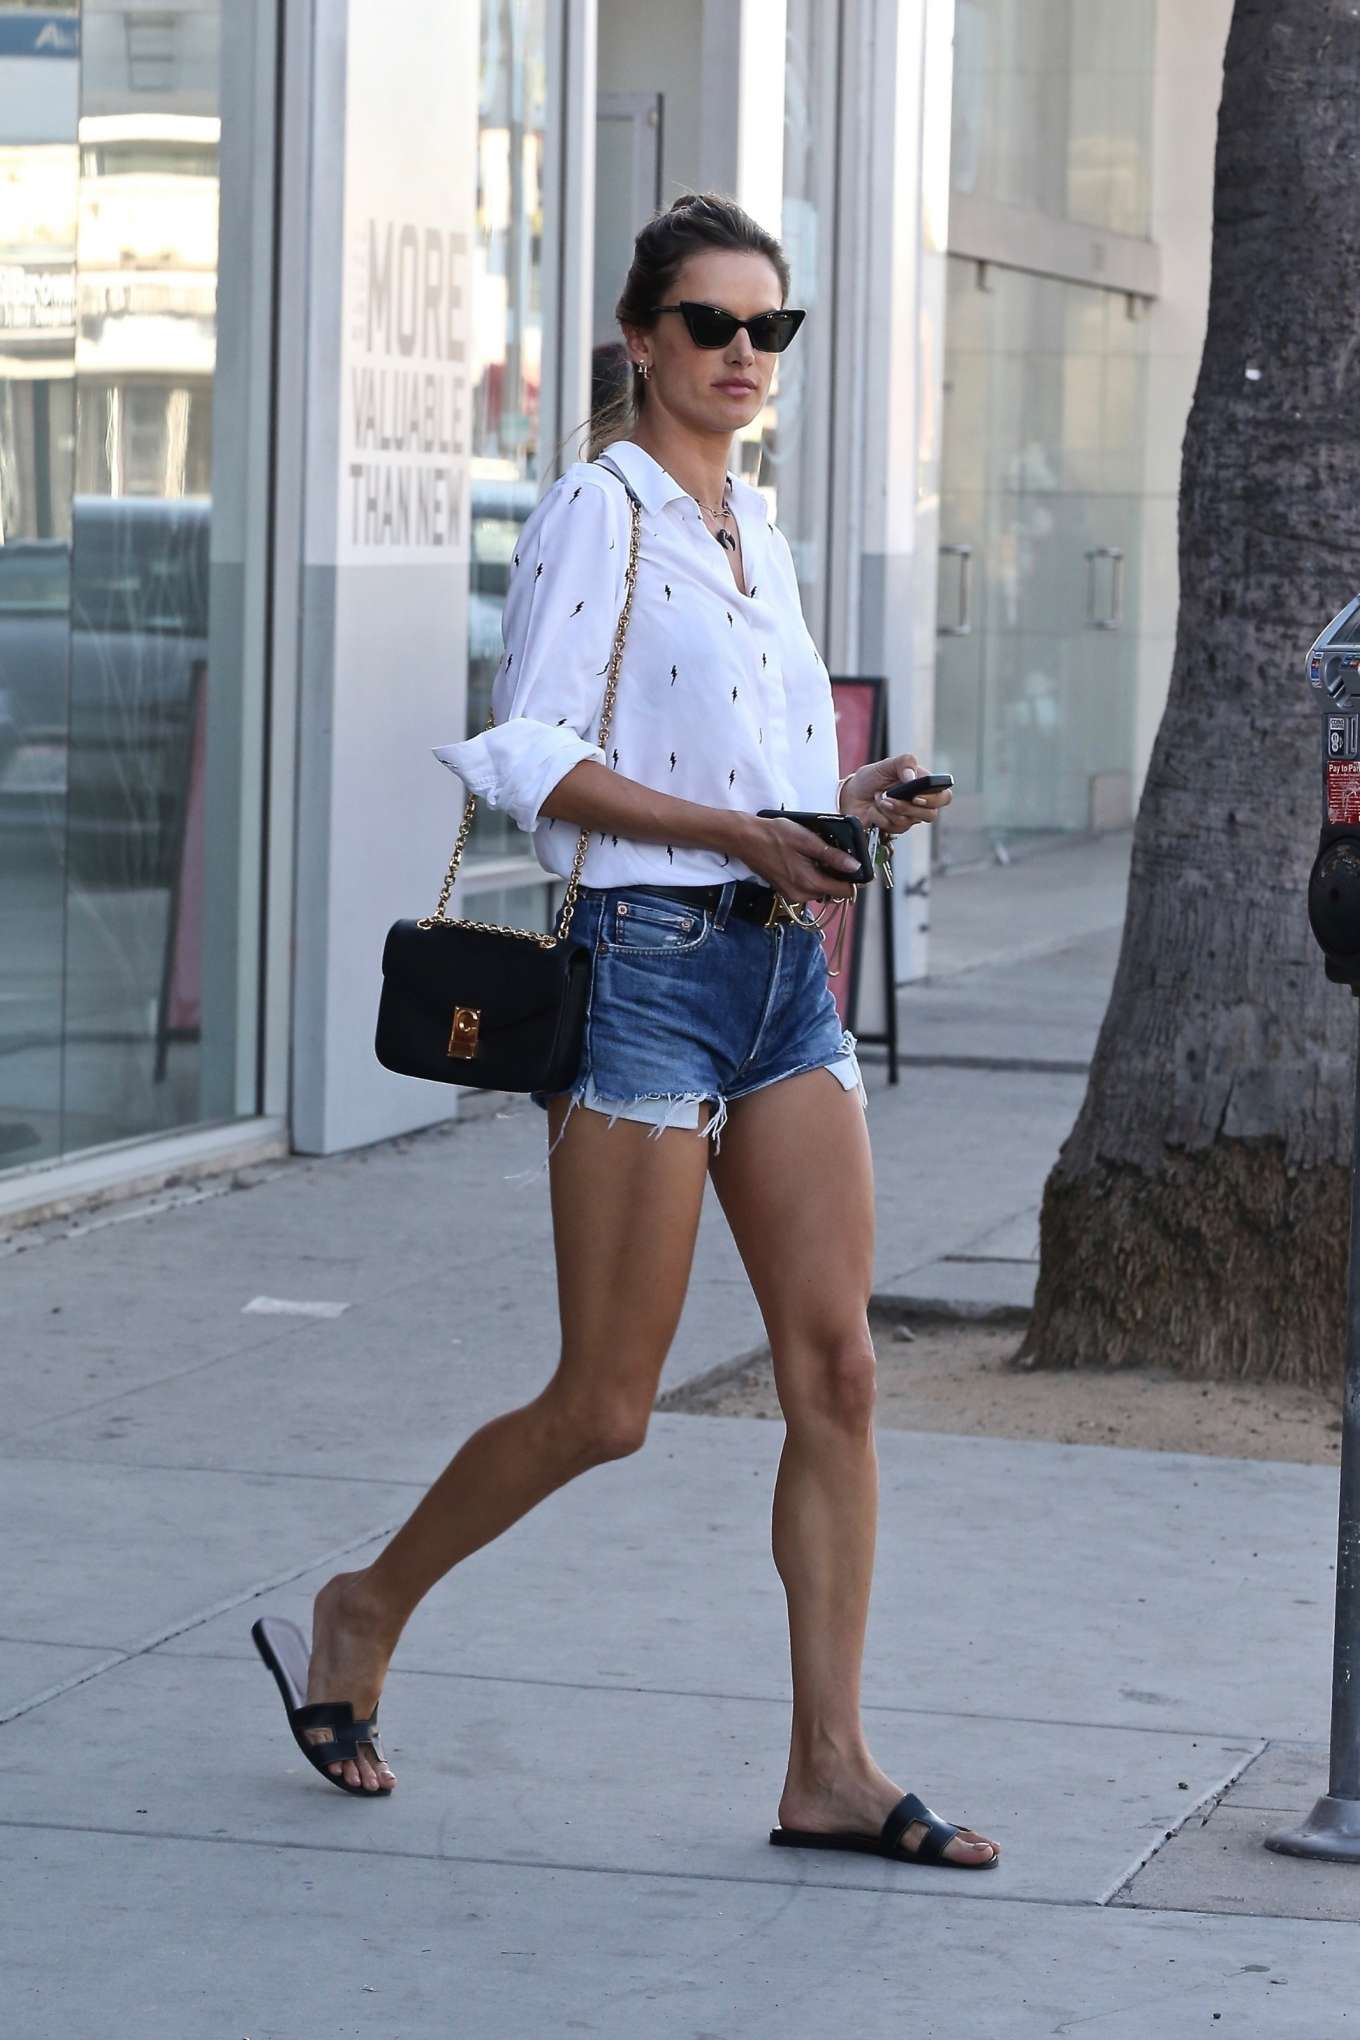 Alessandra Ambrosio rocks denim shorts with a white shirt while shopping for Halloween Costumes in West Hollywood, Los Angeles